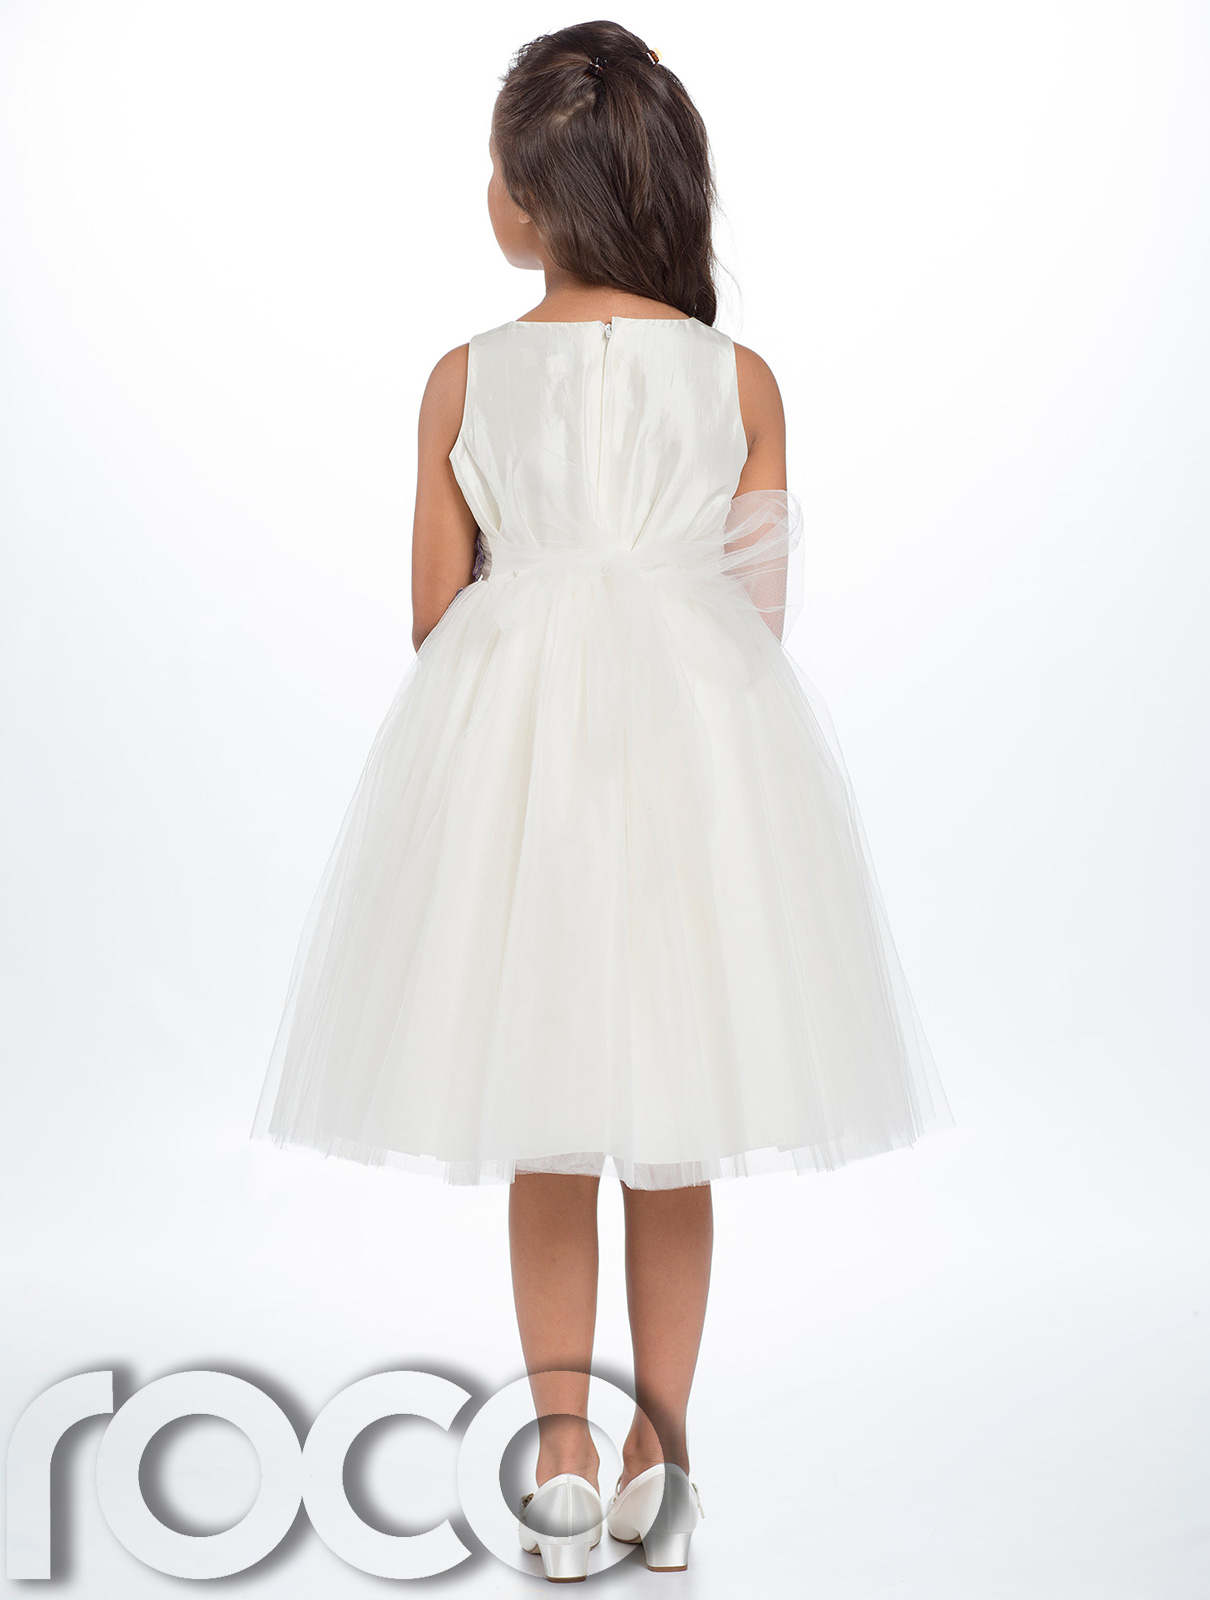 Cheap ivory and purple flower girl dresses wedding guest dresses cheap ivory and purple flower girl dresses 21 izmirmasajfo Images